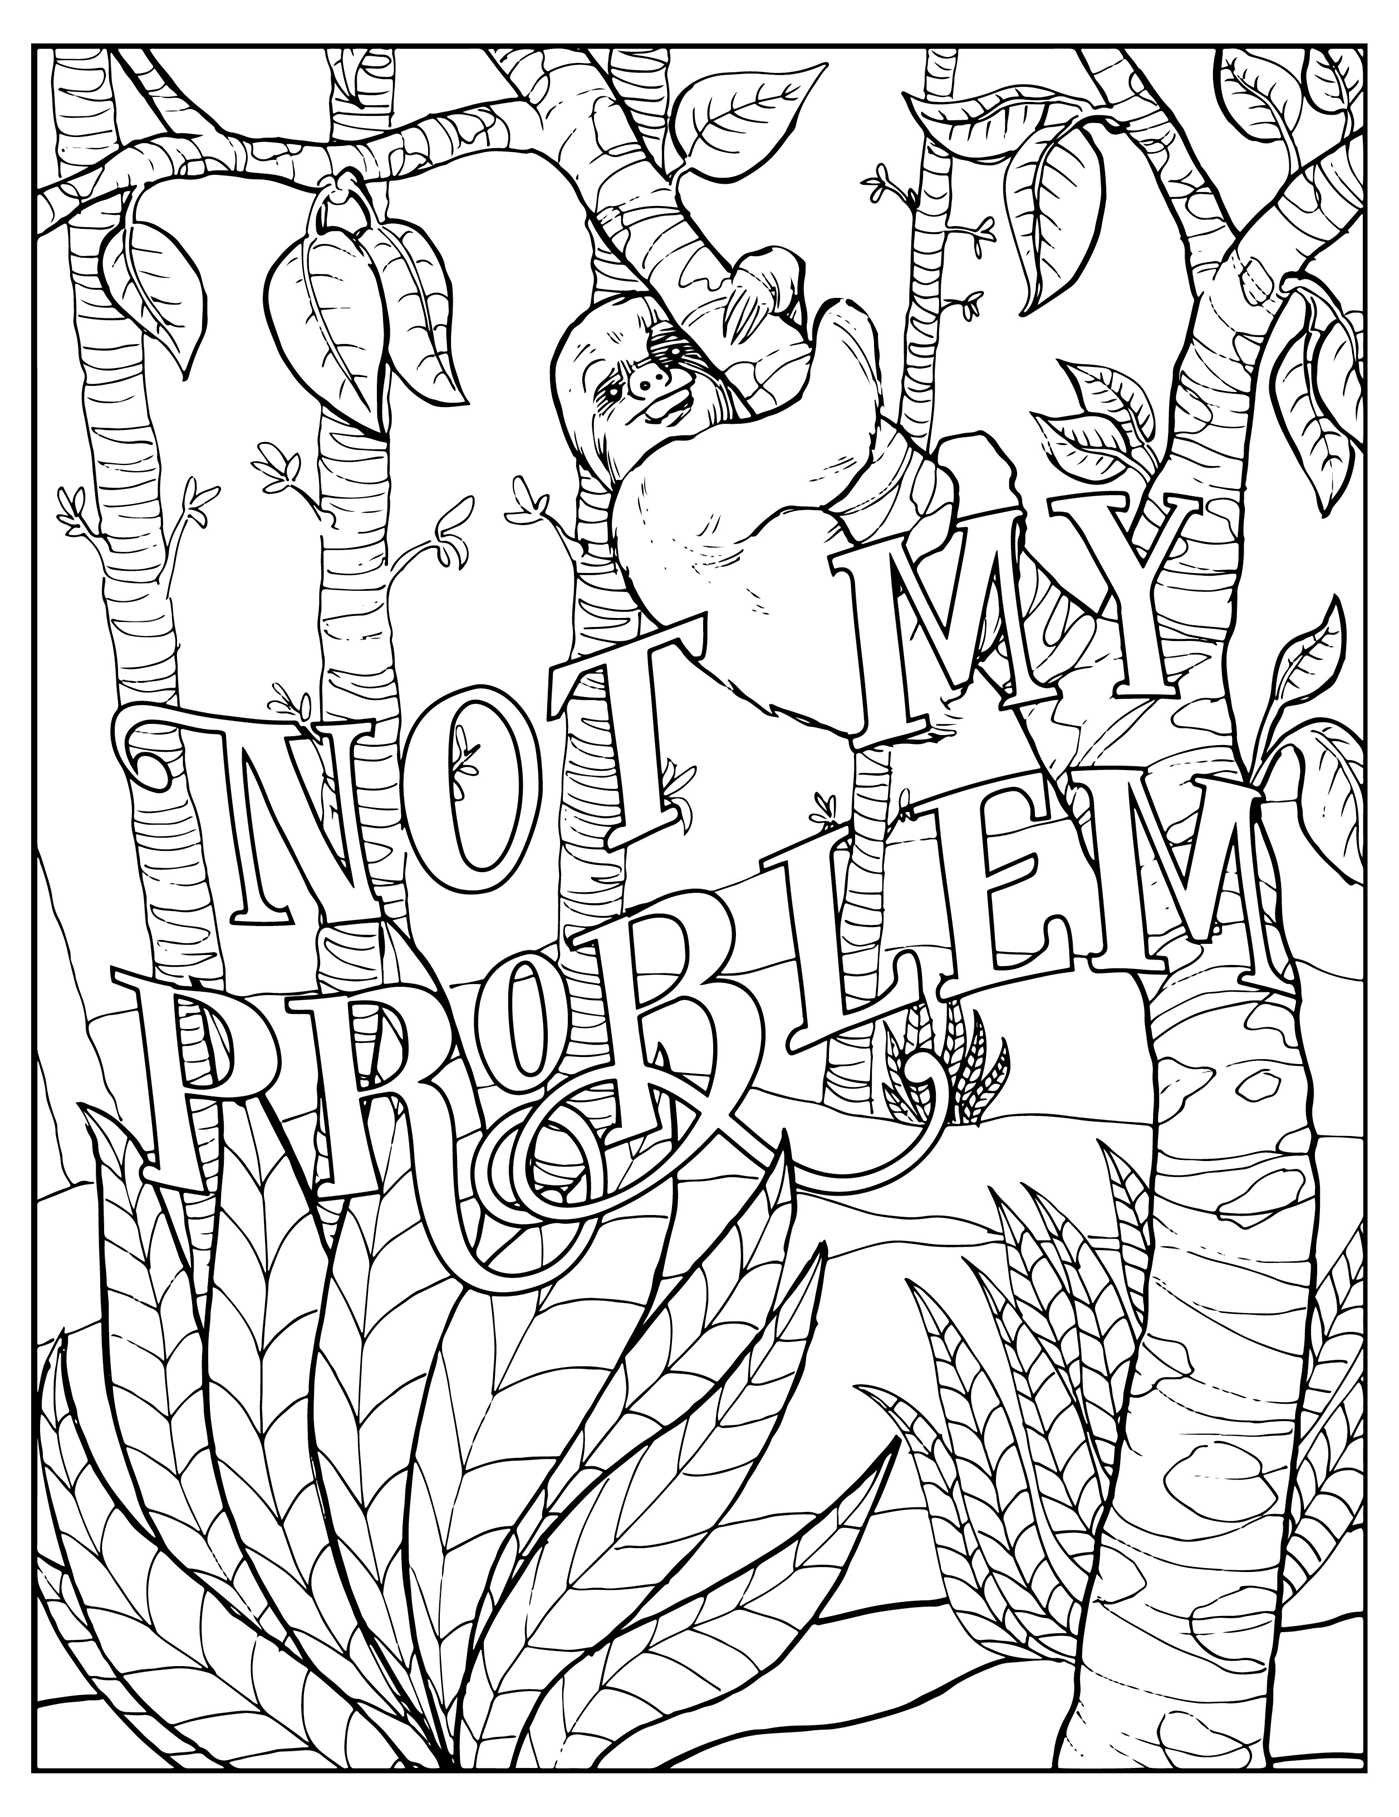 K coloring pages for adults - Coloring Books